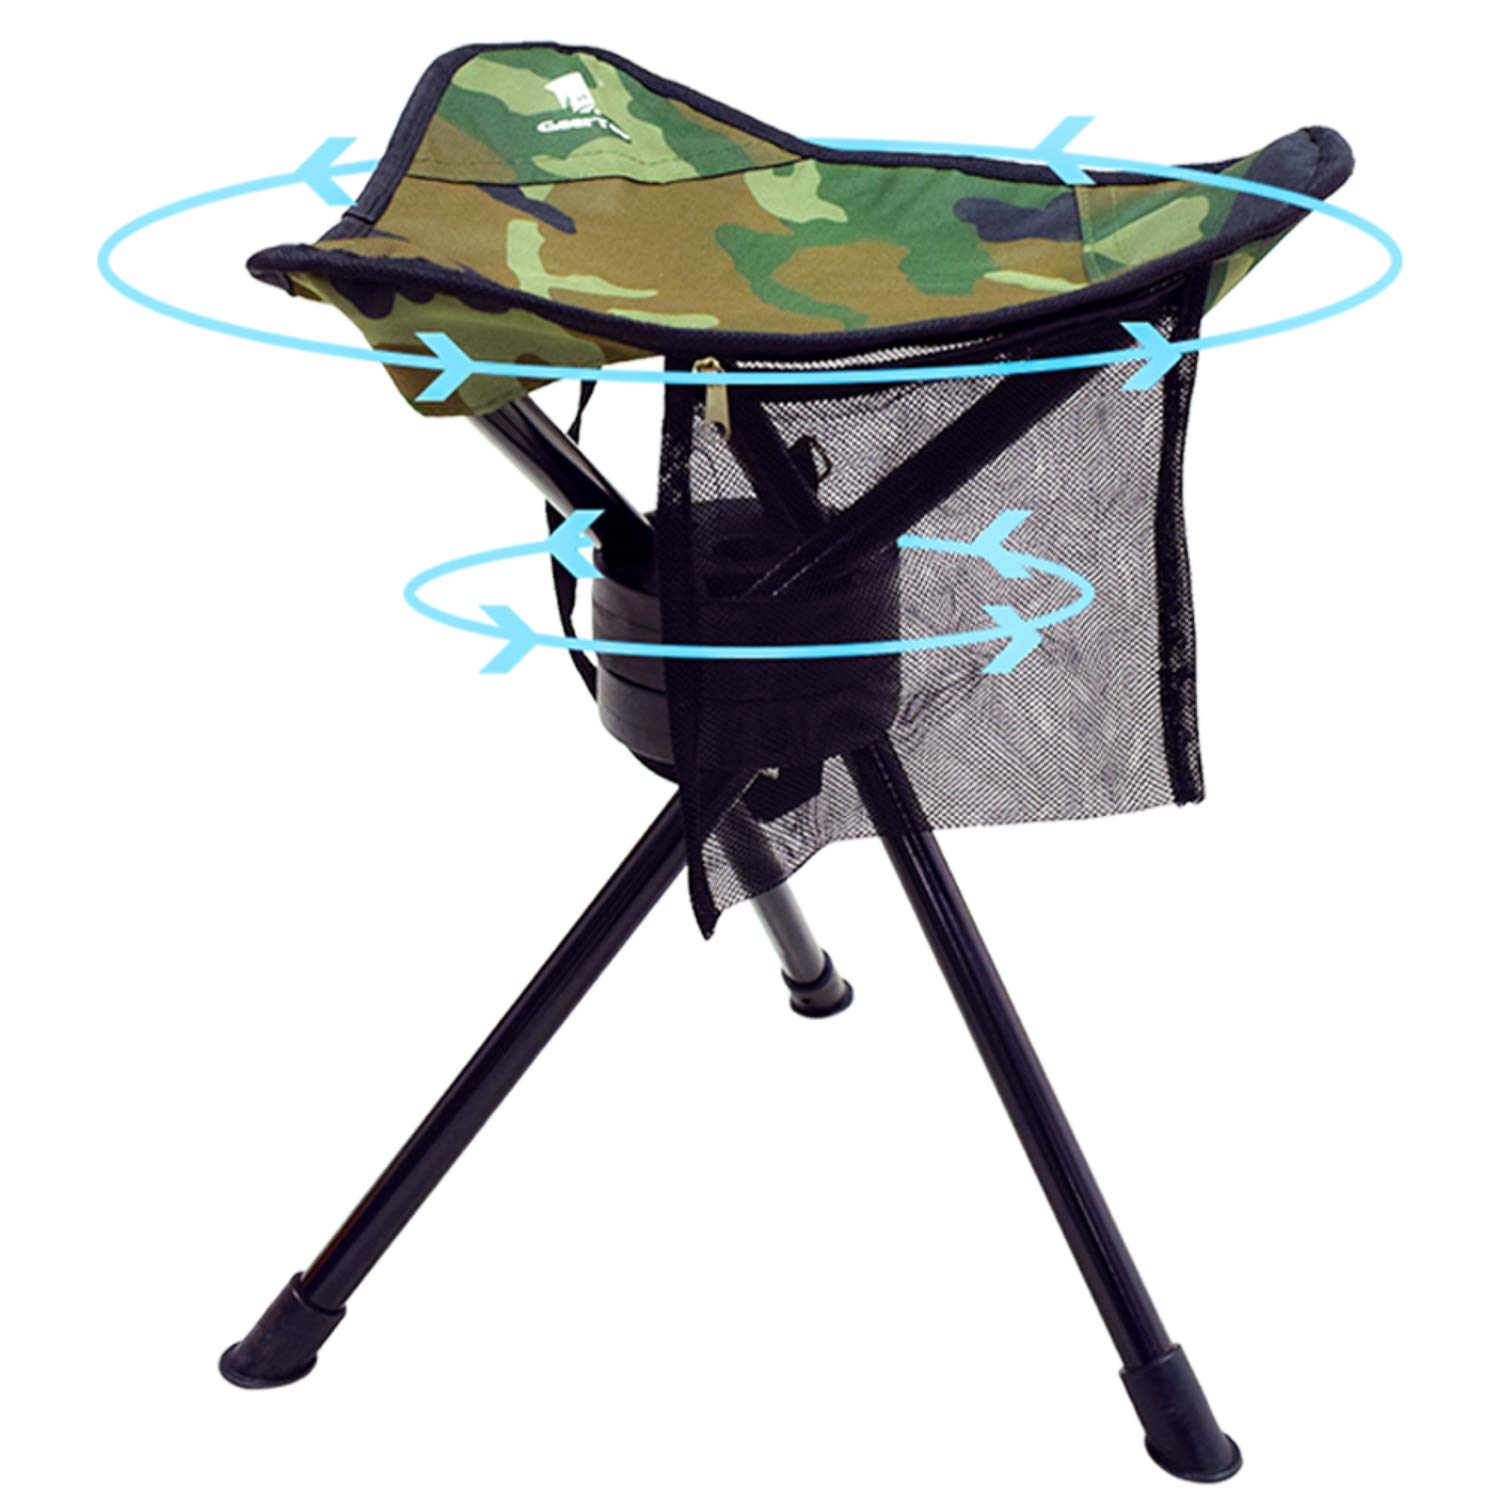 GEERTOP Portable Outdoor Folding Swivel Tripod Stool Fold Up Slacker Chair Lightweight Full 360 Degree Rotation Heavy Duty for Camping Hunting Fishing Hiking Backpacking Travel 200 lbs Capacity by GEERTOP